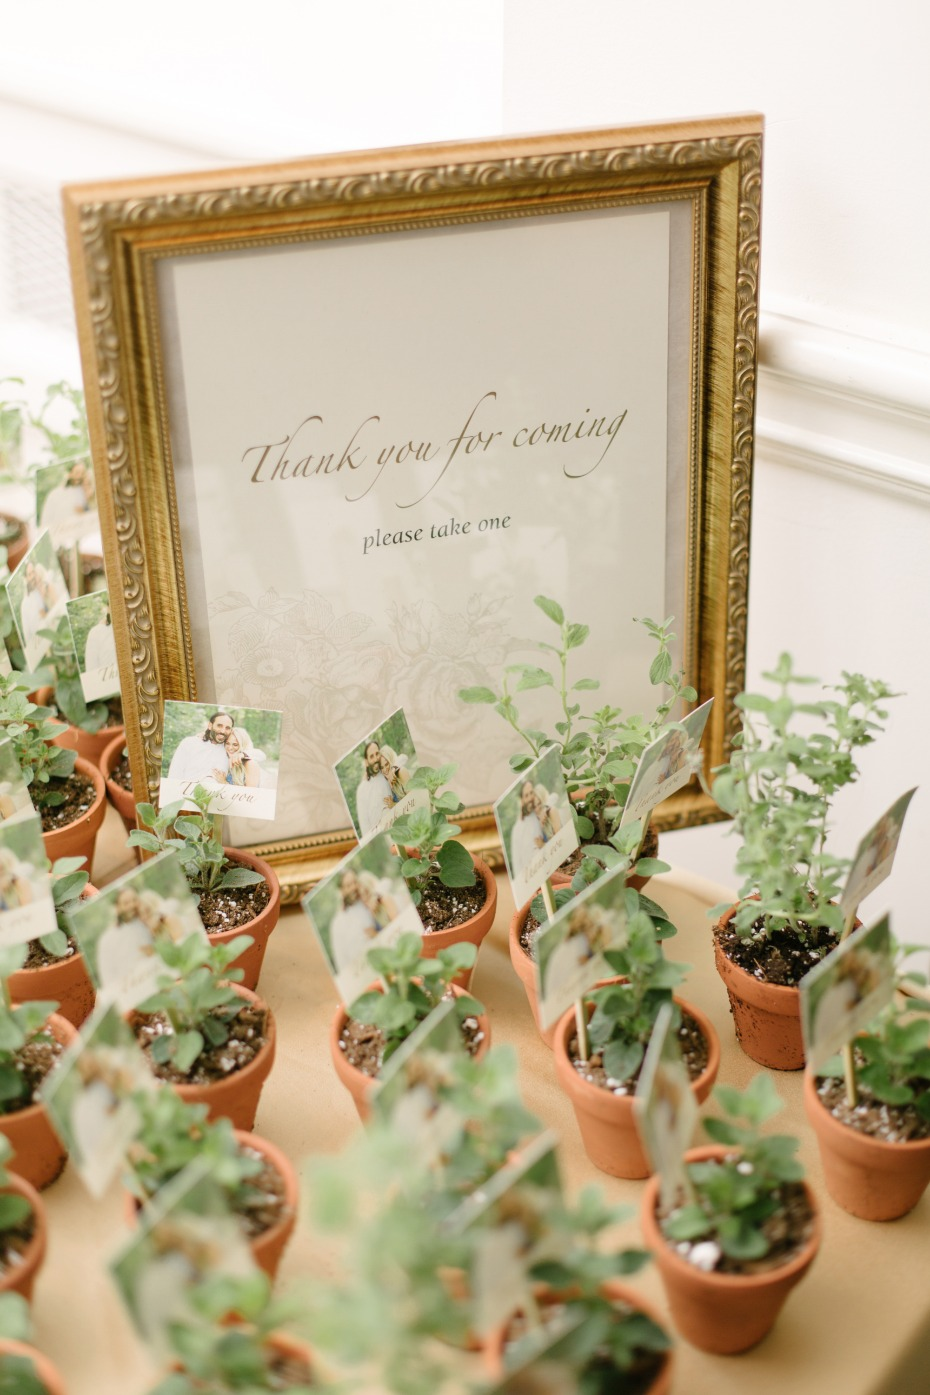 You Are Going To Love Where This Bride Got Her Wedding Inspiration!